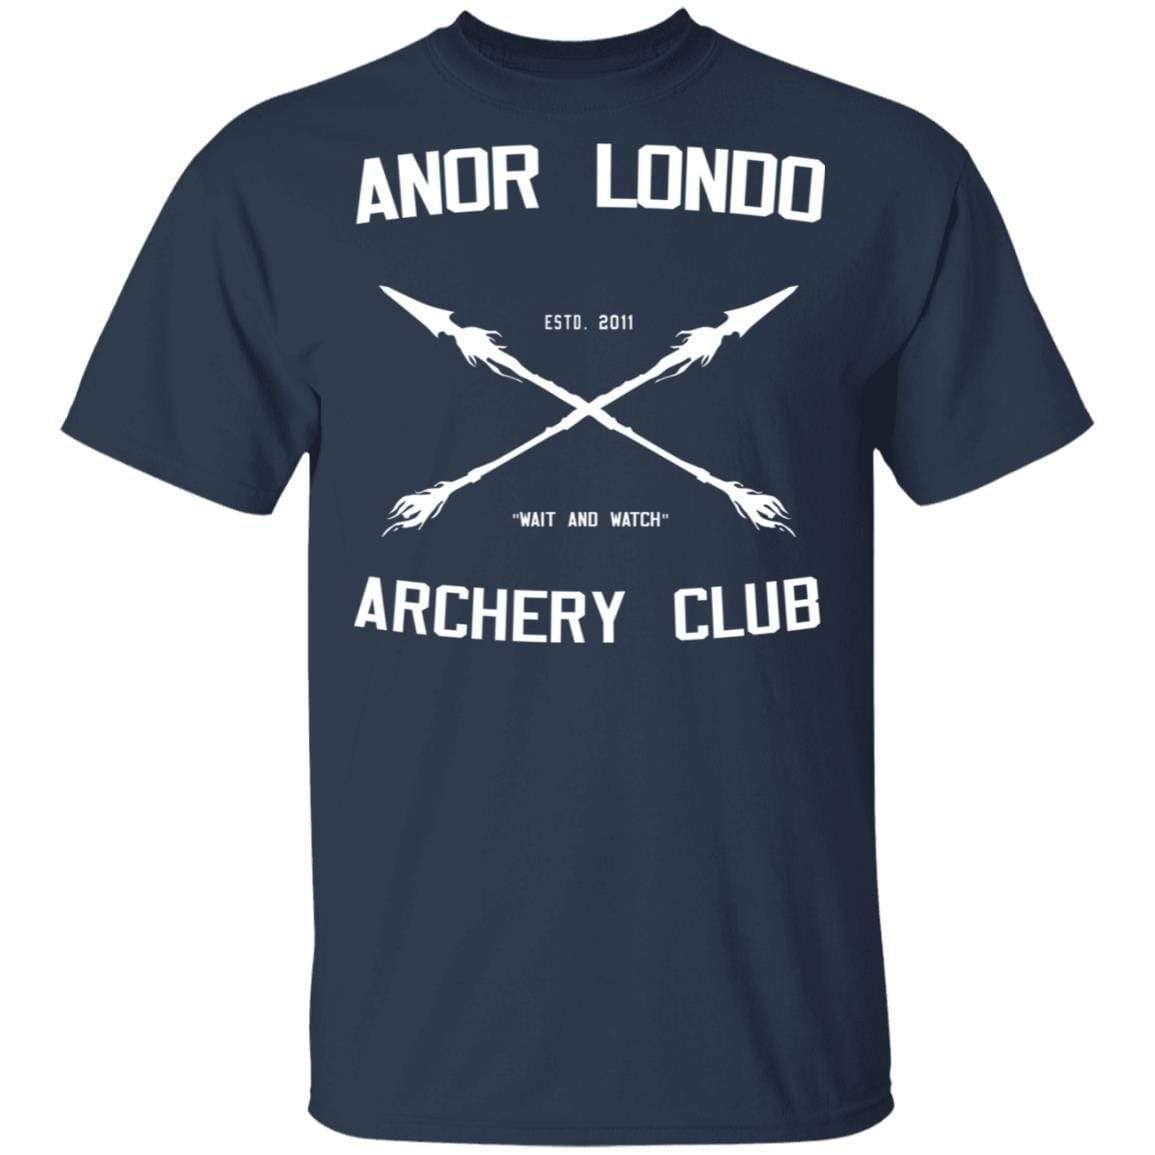 Anor Londo Archery Club 2011 T-Shirts, Hoodies 1049-9966-88767425-48248 - Tee Ript